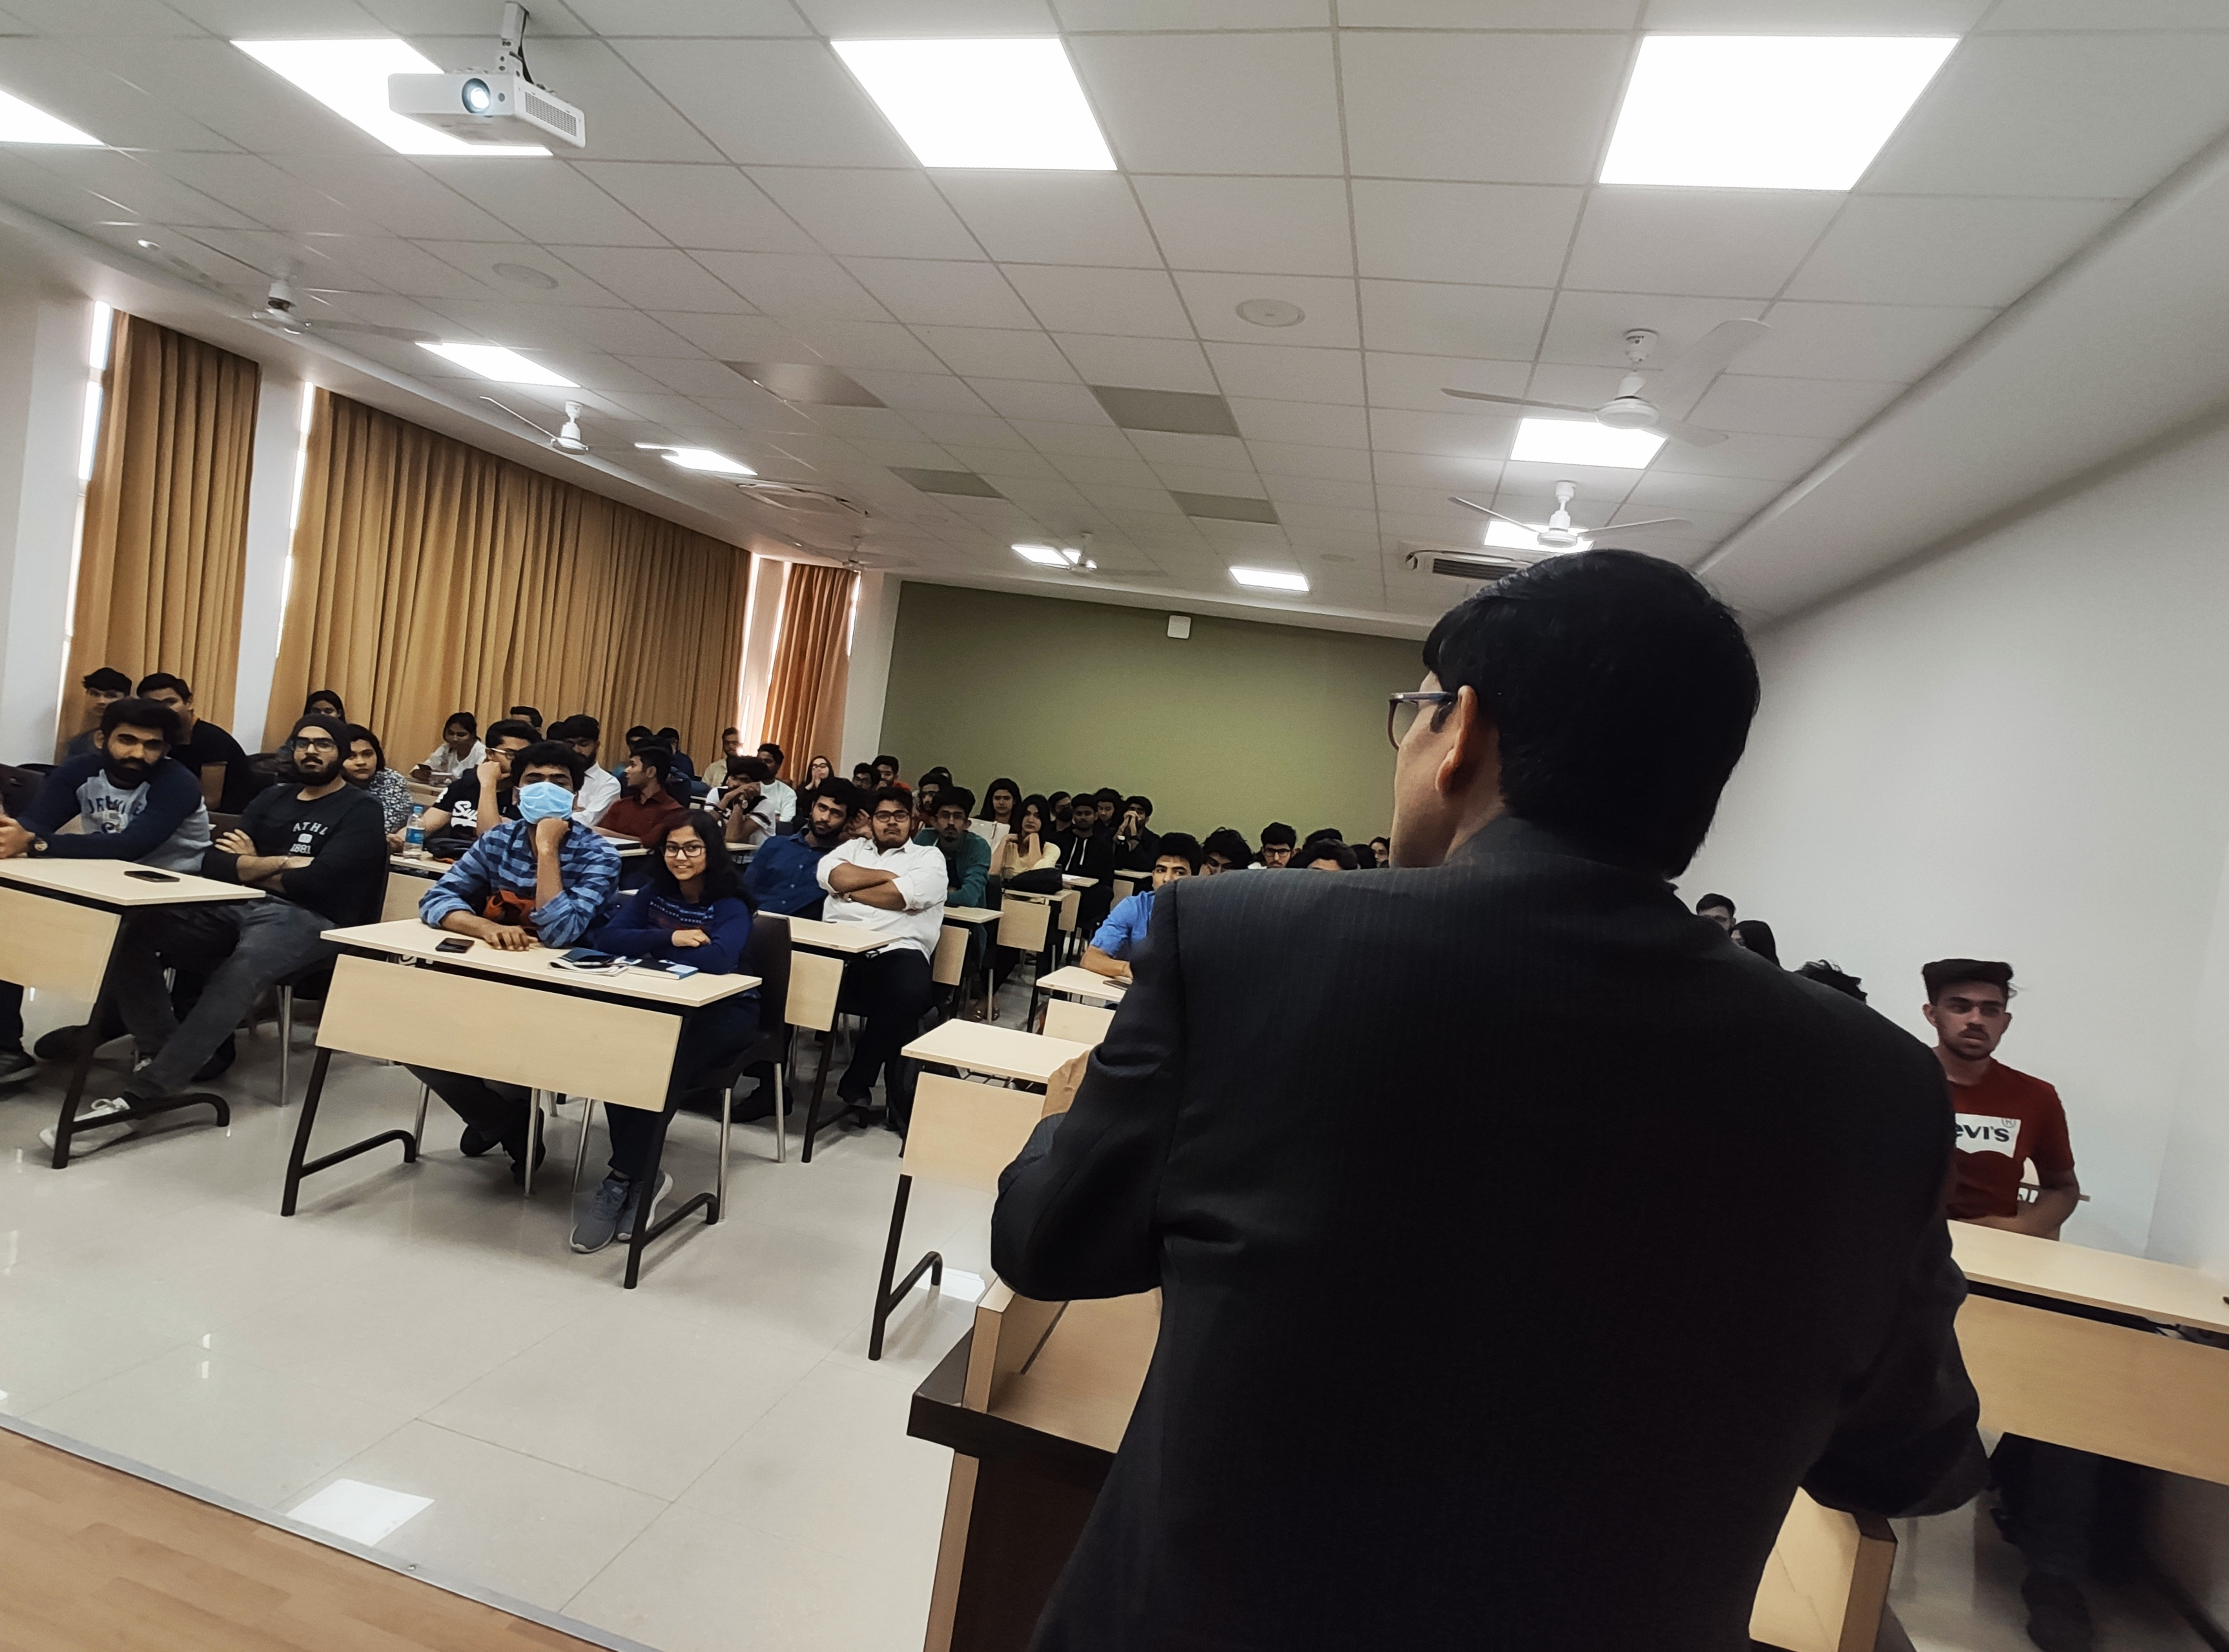 Symbiosis NOIDA - Best Colleges For BBA in Delhi NCR